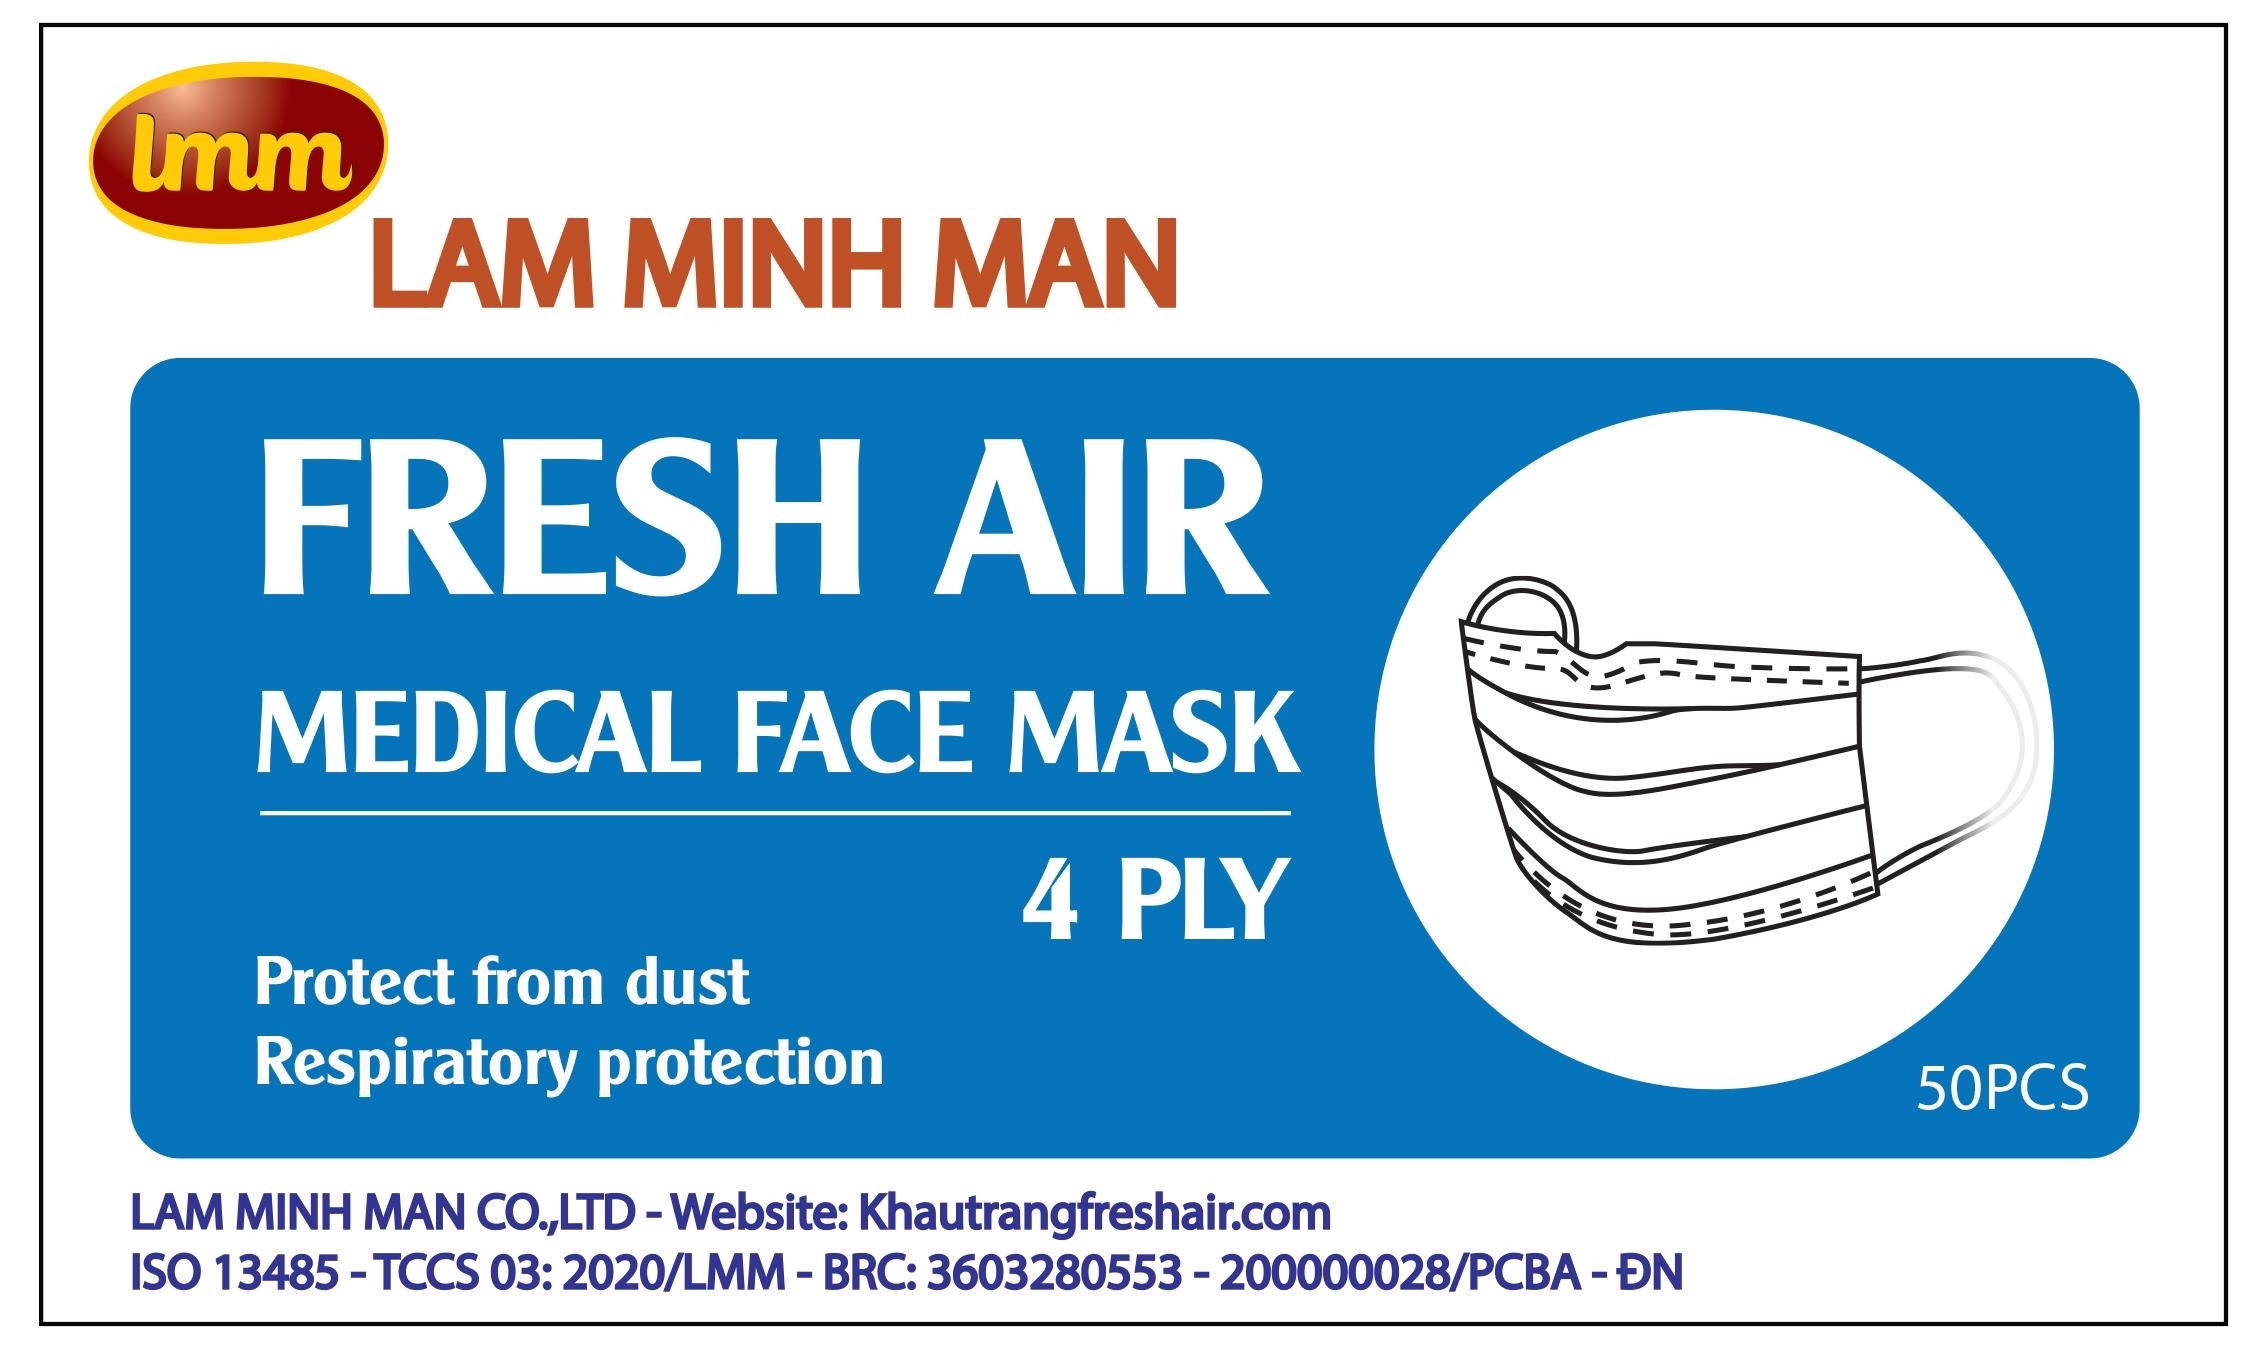 Specializes in manufacturing, wholesale and retail supply of face masks